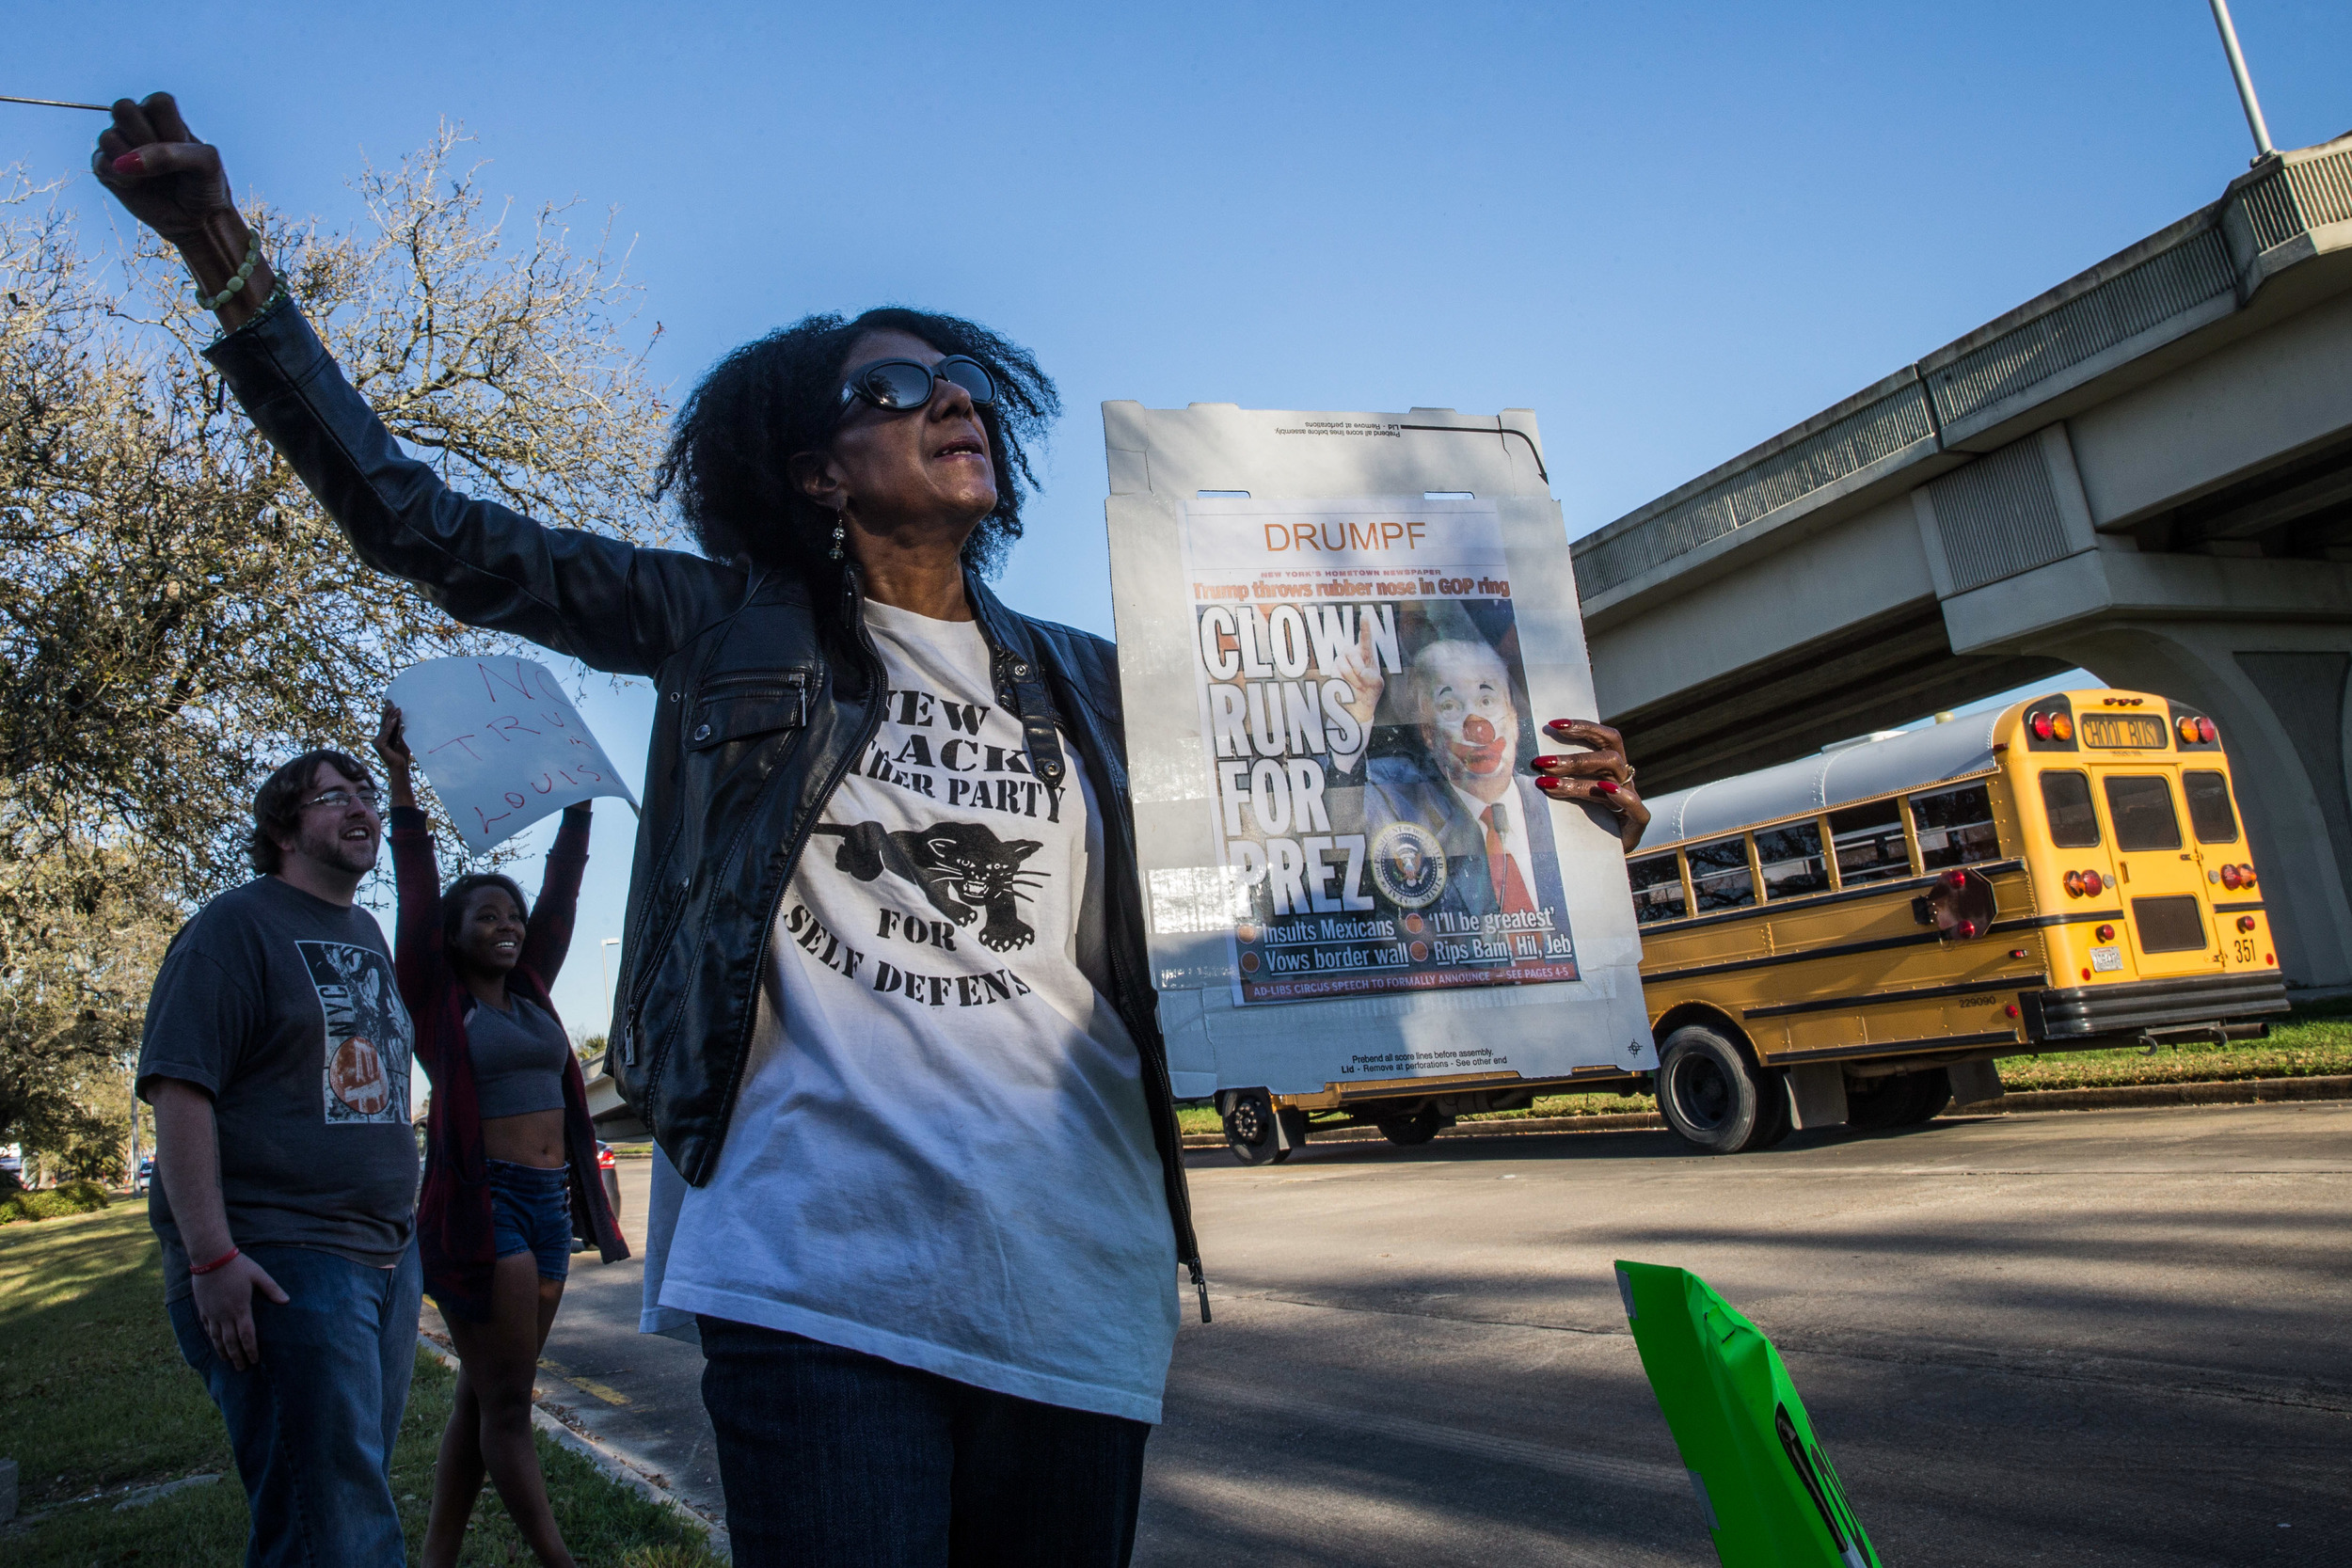 Protesters oppose Trump's rally